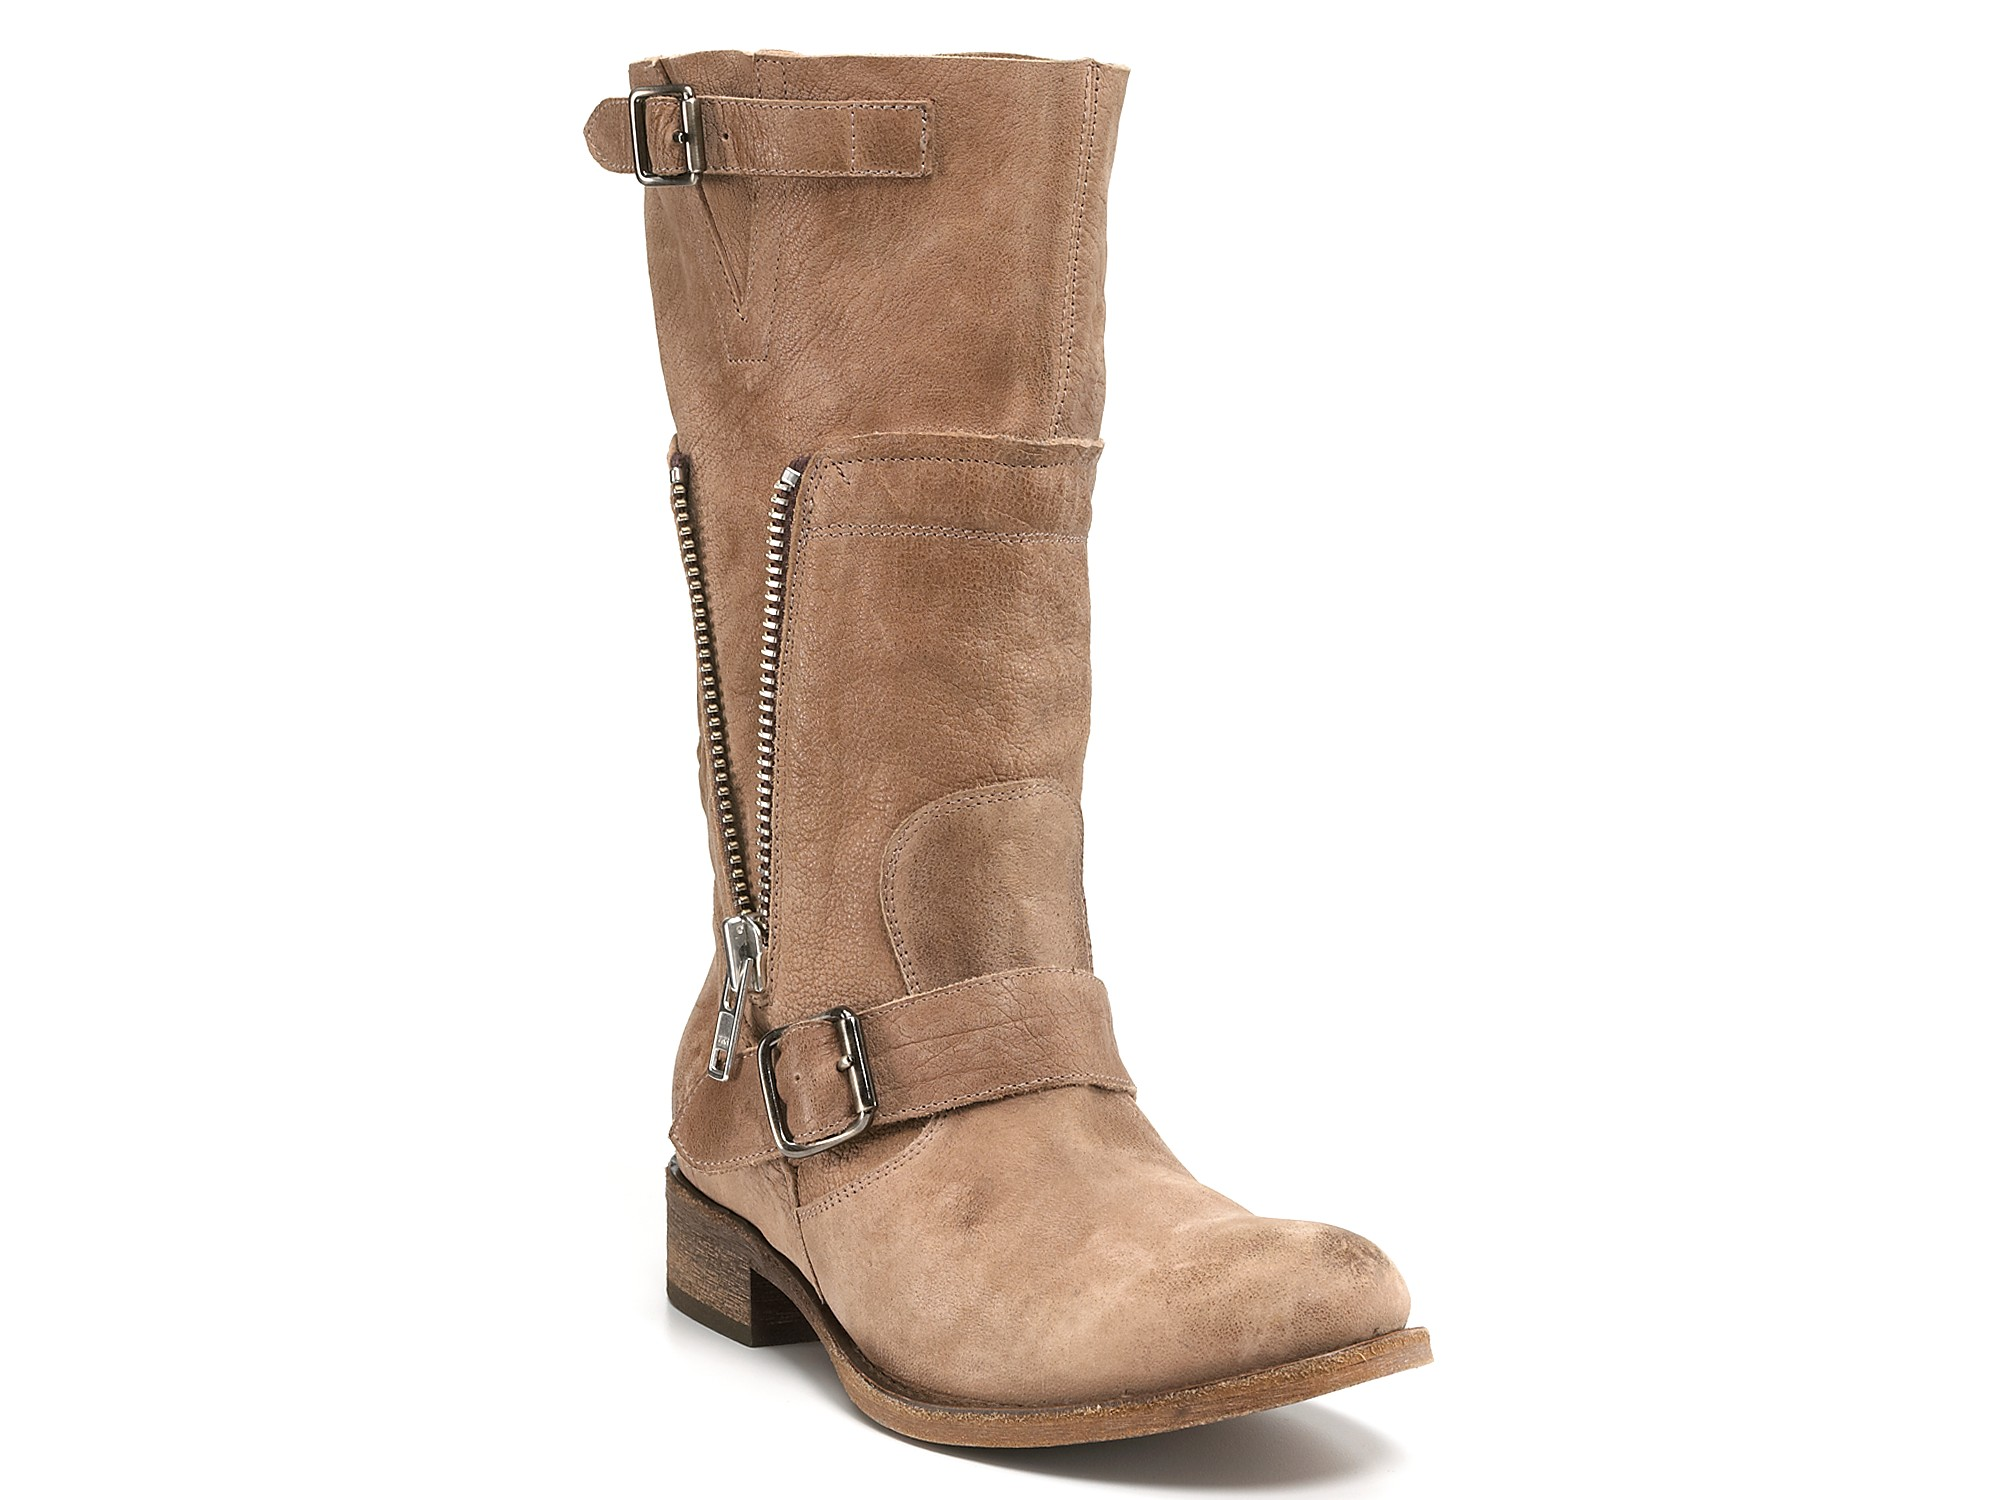 steve madden flat boots in beige taupe leather lyst